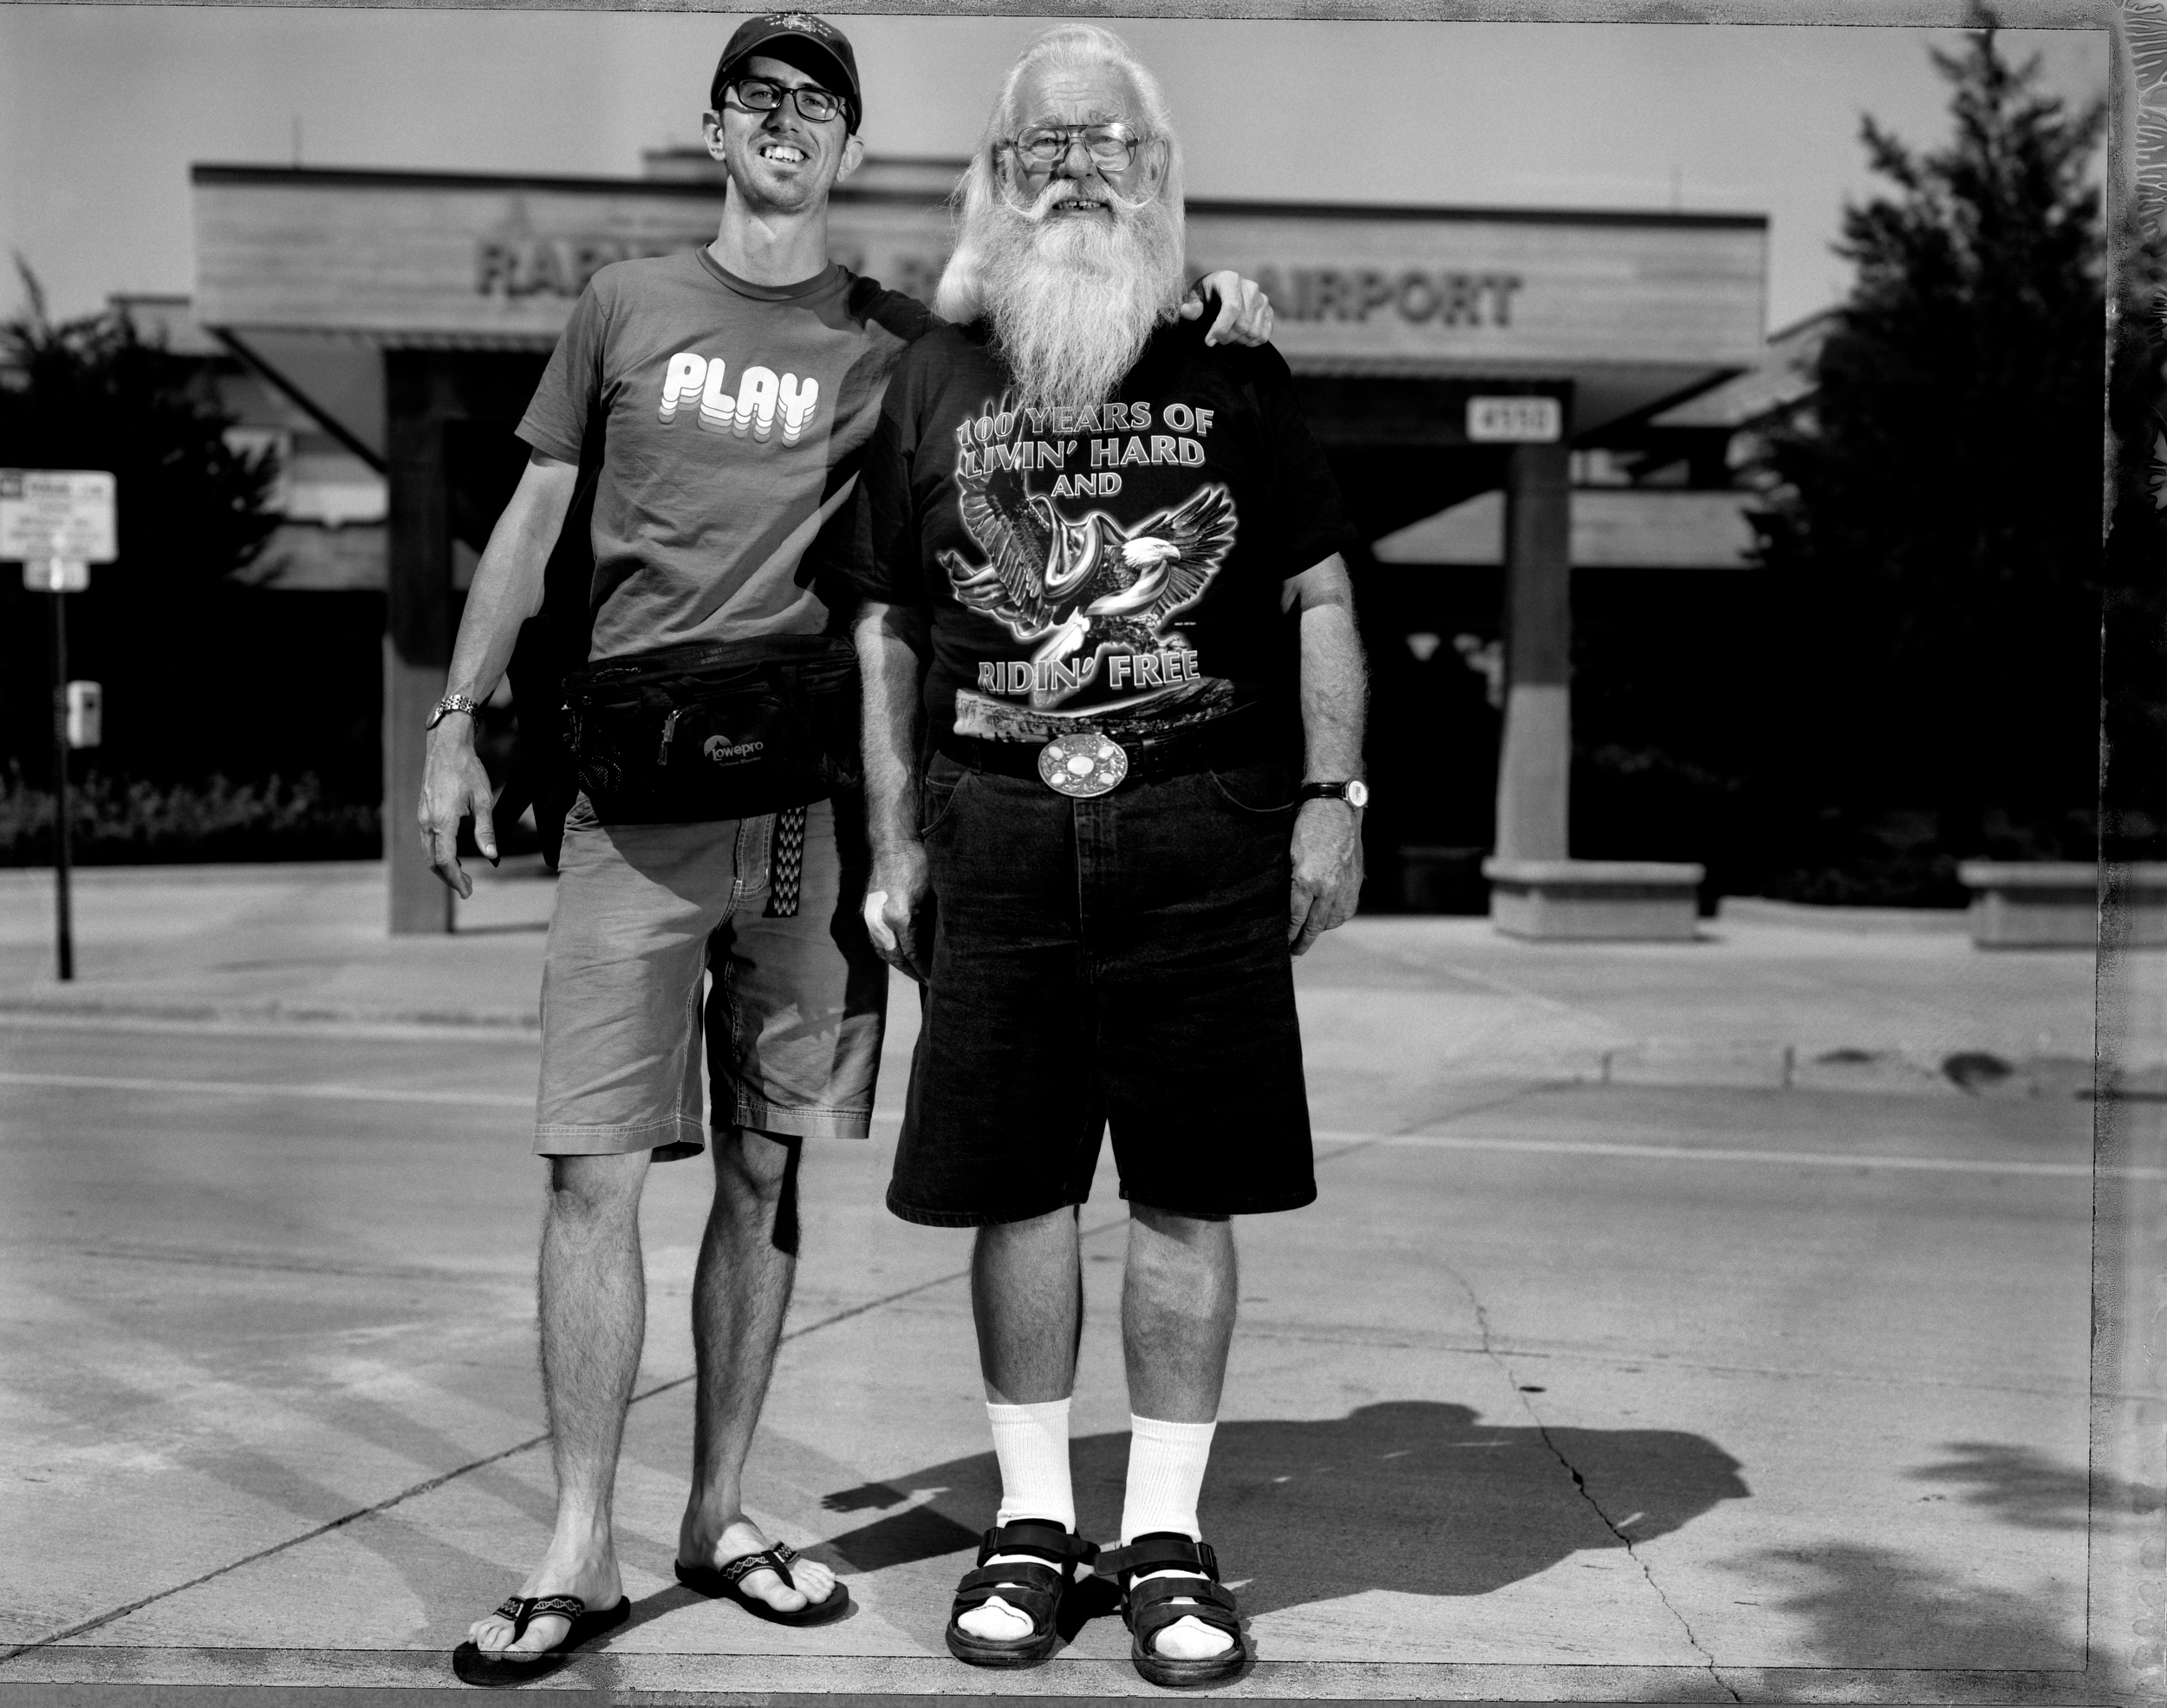 My dad, assisting me at the Sturgis Motorcycle Rally